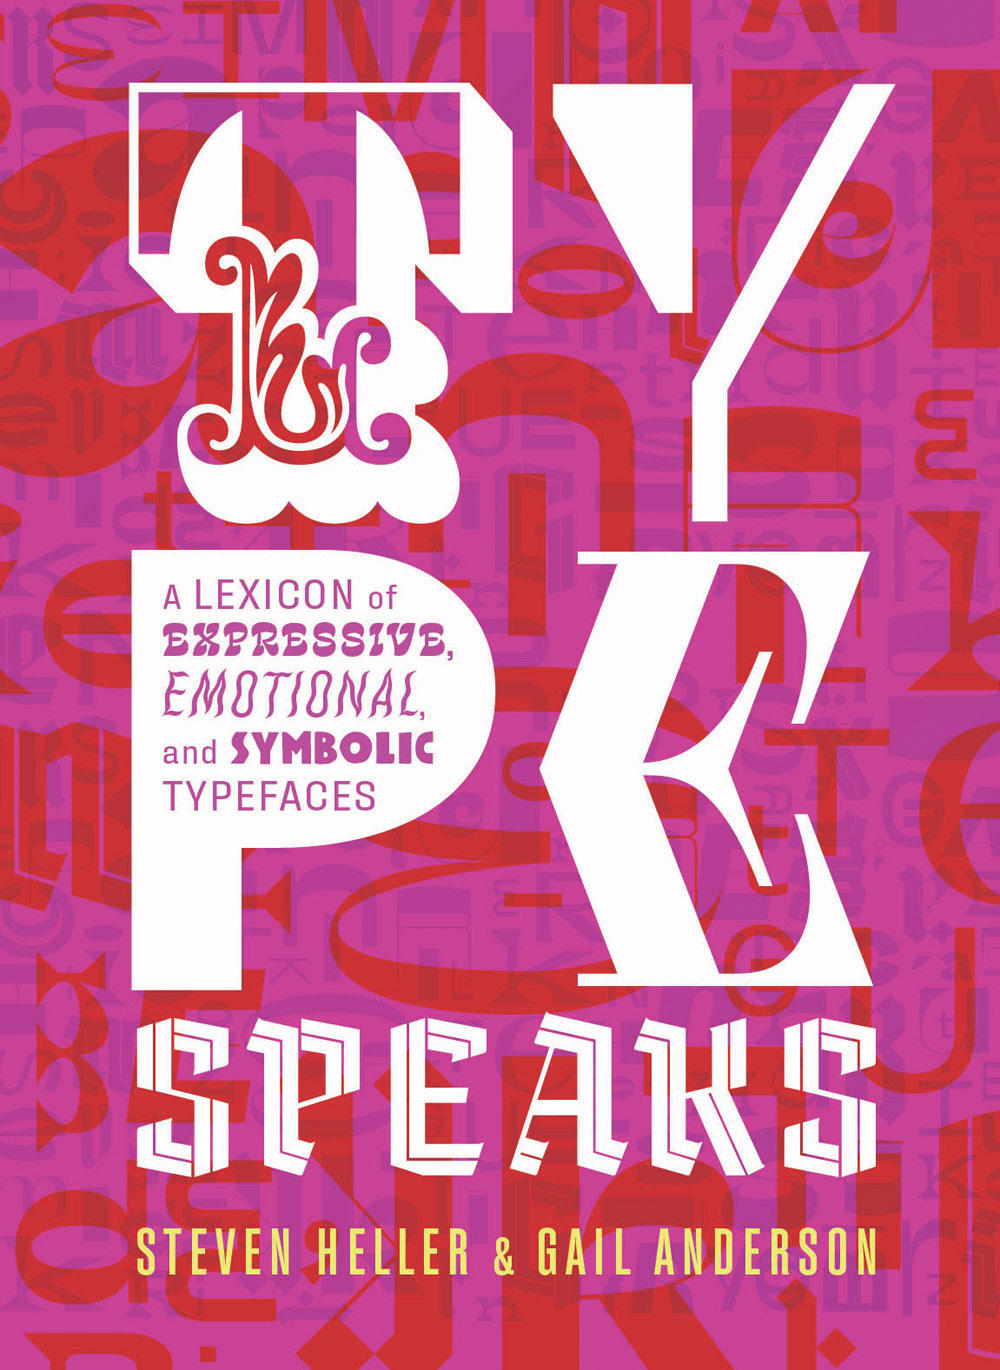 Type Speaks: A Lexicon of Expressive, Emotional, and Symbolic Typefaces